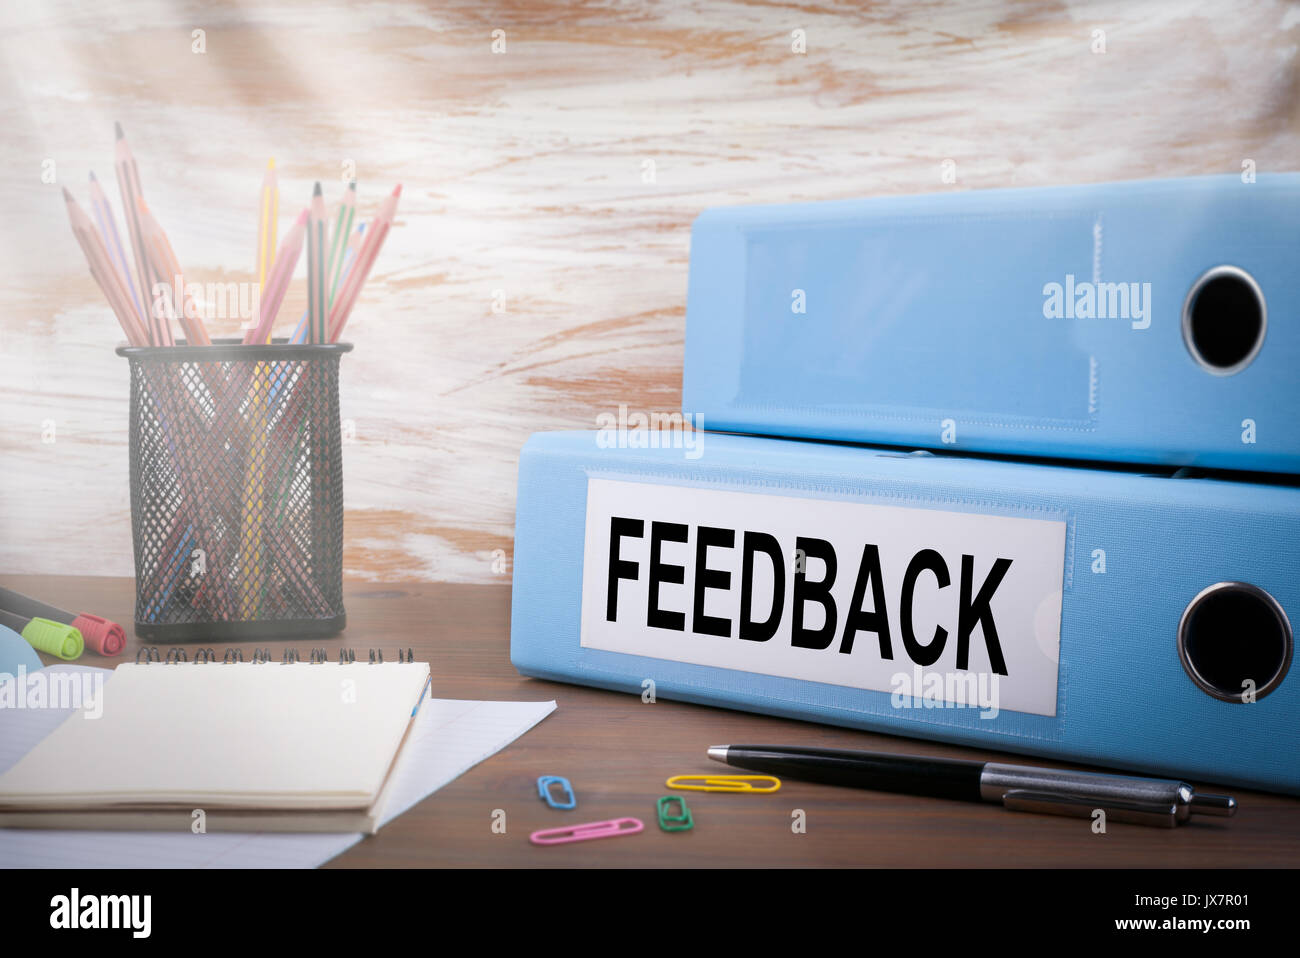 Feedback, Office Binder on Wooden Desk. On the table colored pencils, pen, notebook paper. - Stock Image